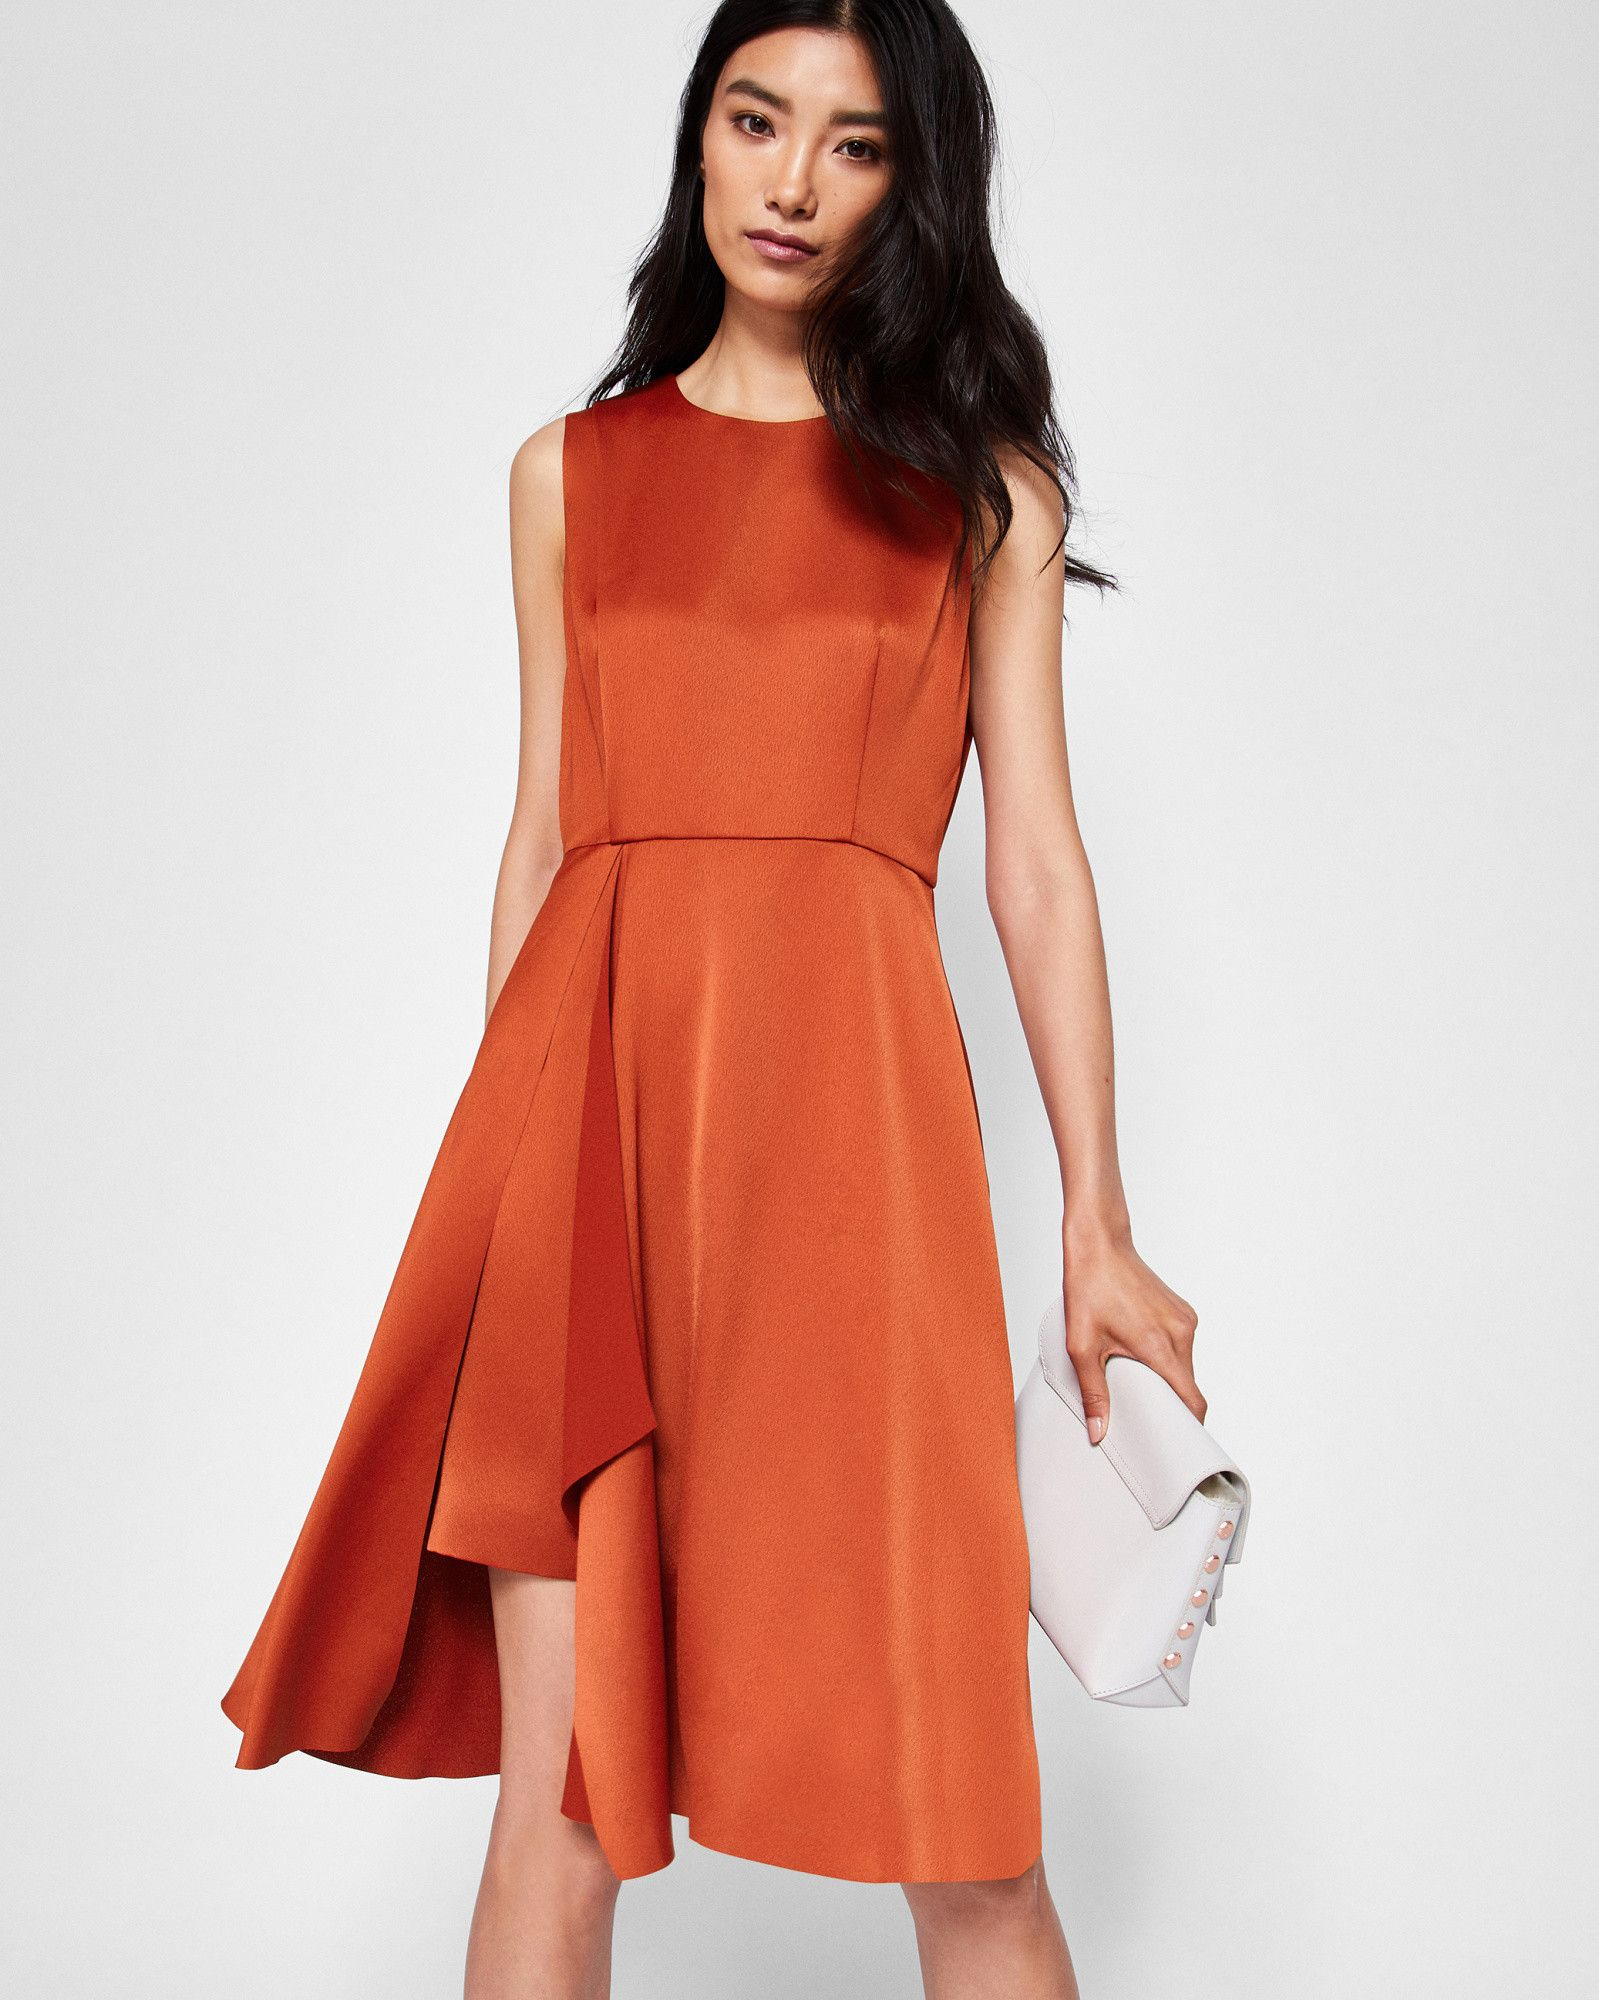 Front fold pleated dress - Brick Red | Dresses | Ted Baker